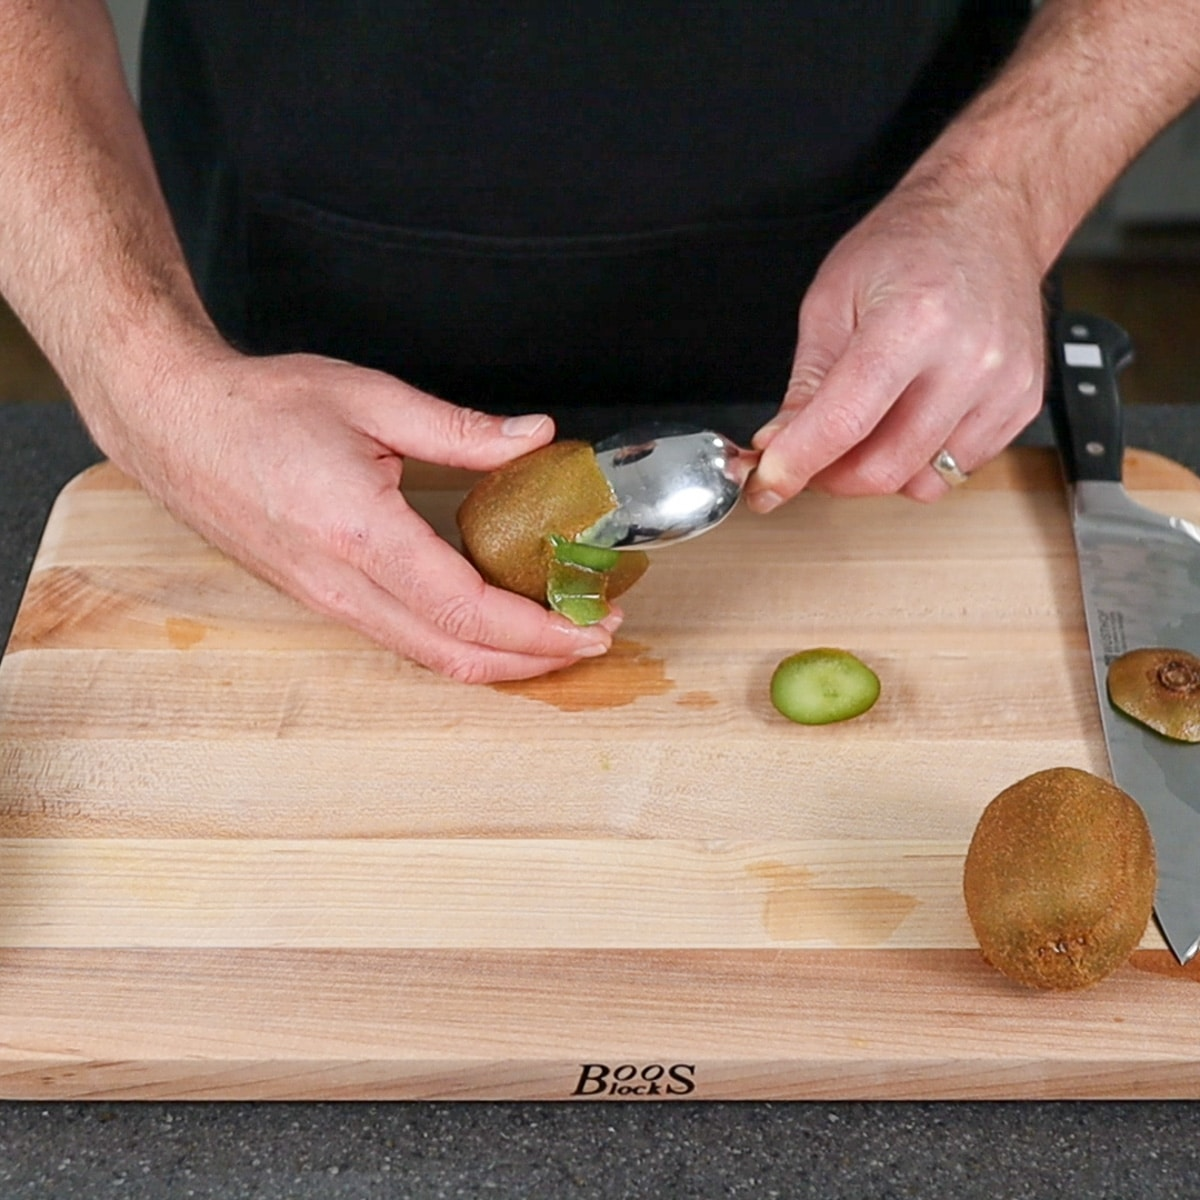 kiwi fruit being peeled with a spoon